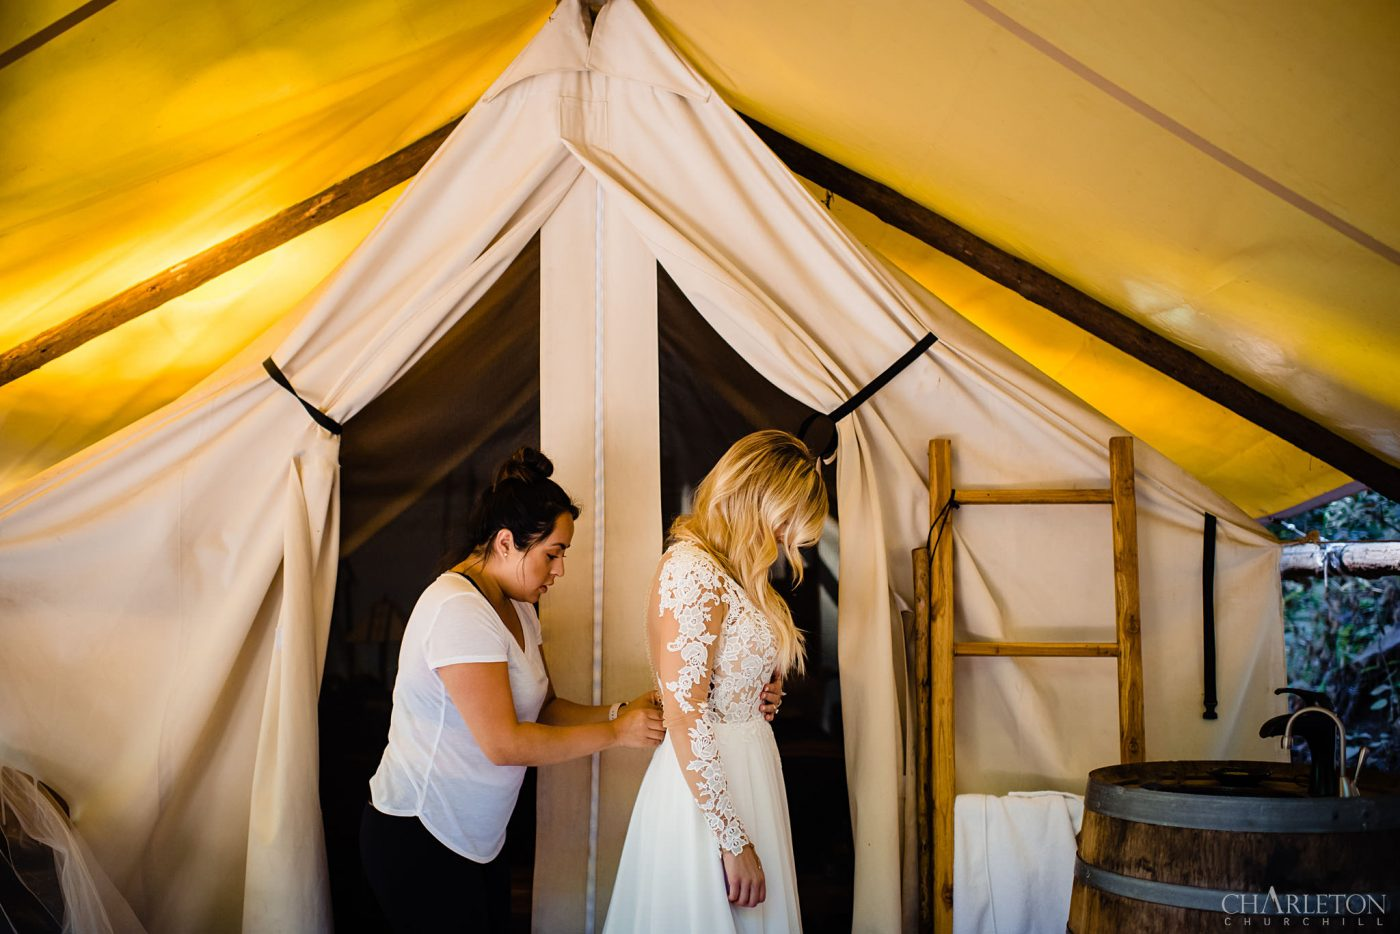 an eloping stylish bride getting wedding gown on at tent of glampgrounds of ventana big sur